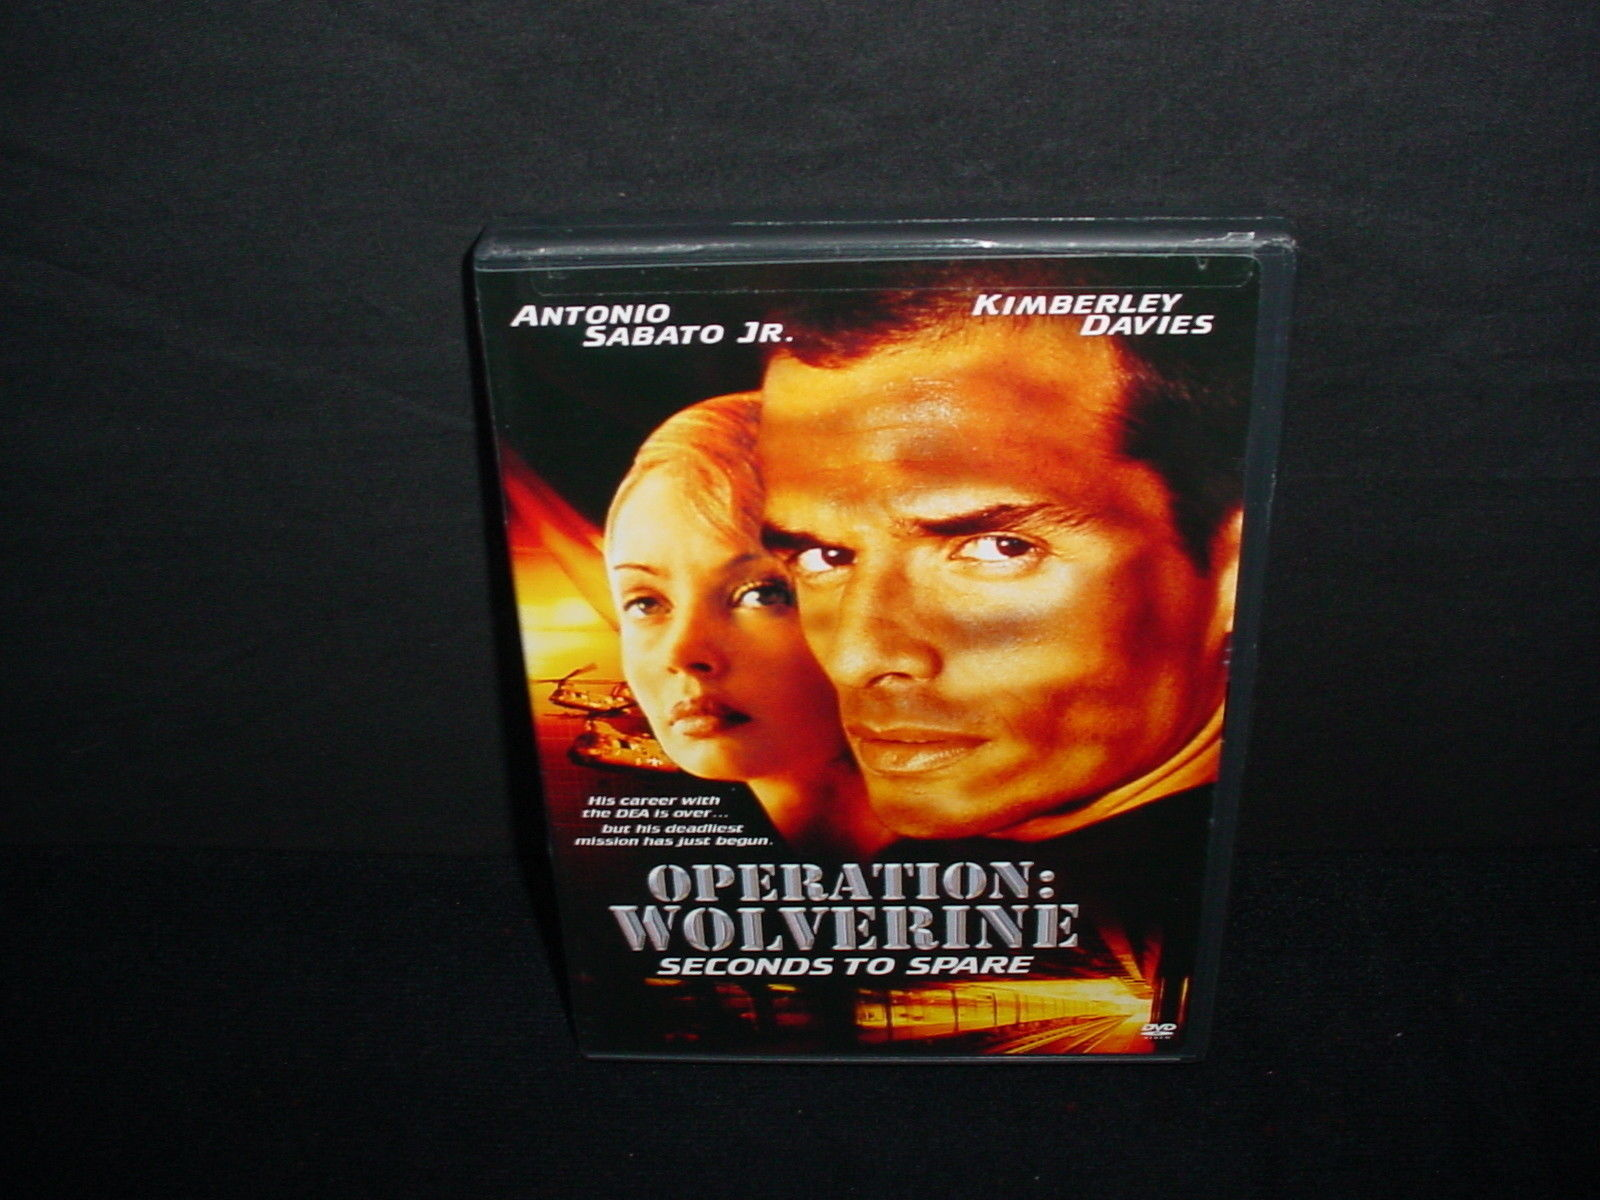 Primary image for Operation Wolverine DVD Movie Antonio Sabato Jr Kimberley Davies